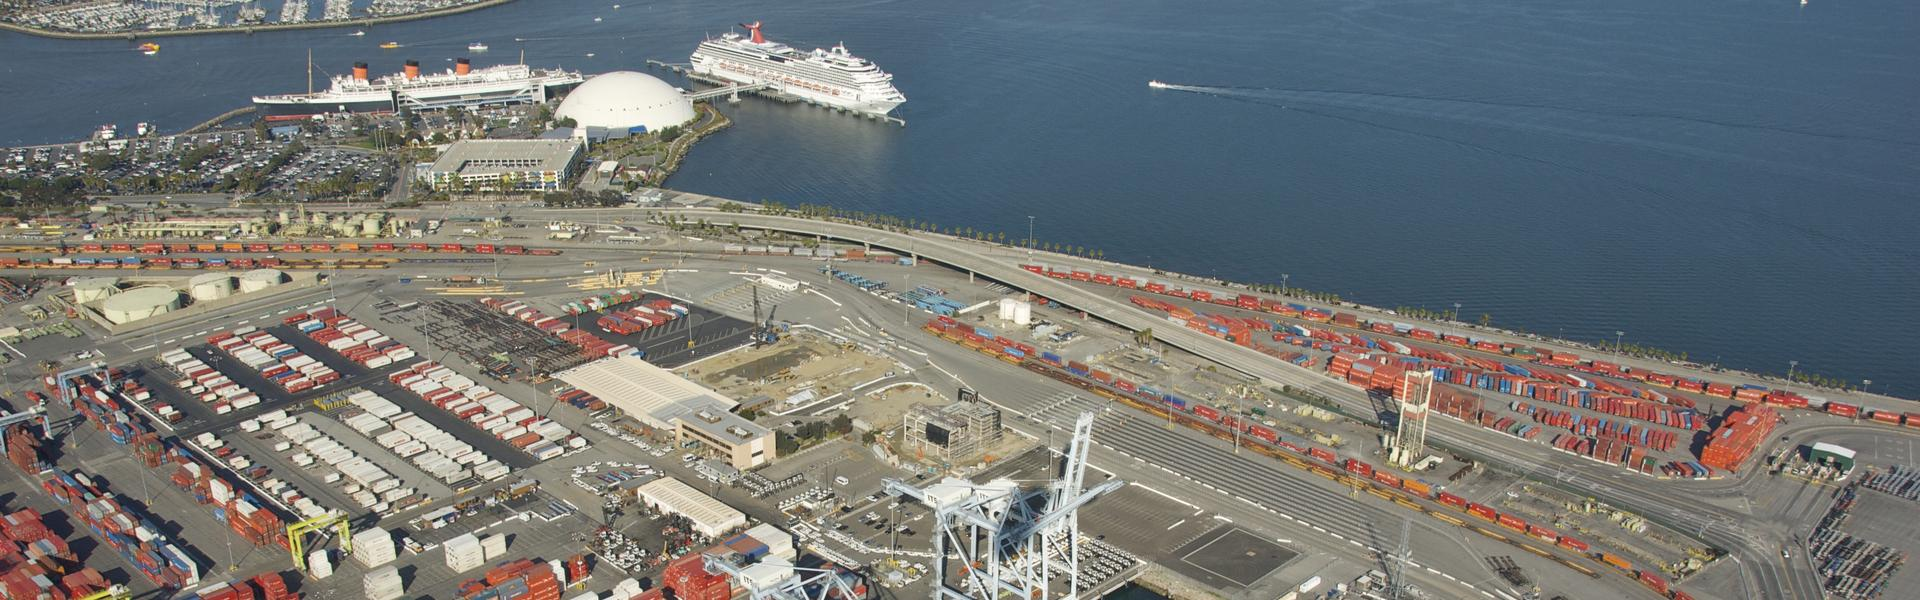 Aerial shot of the Port of Long Beach.